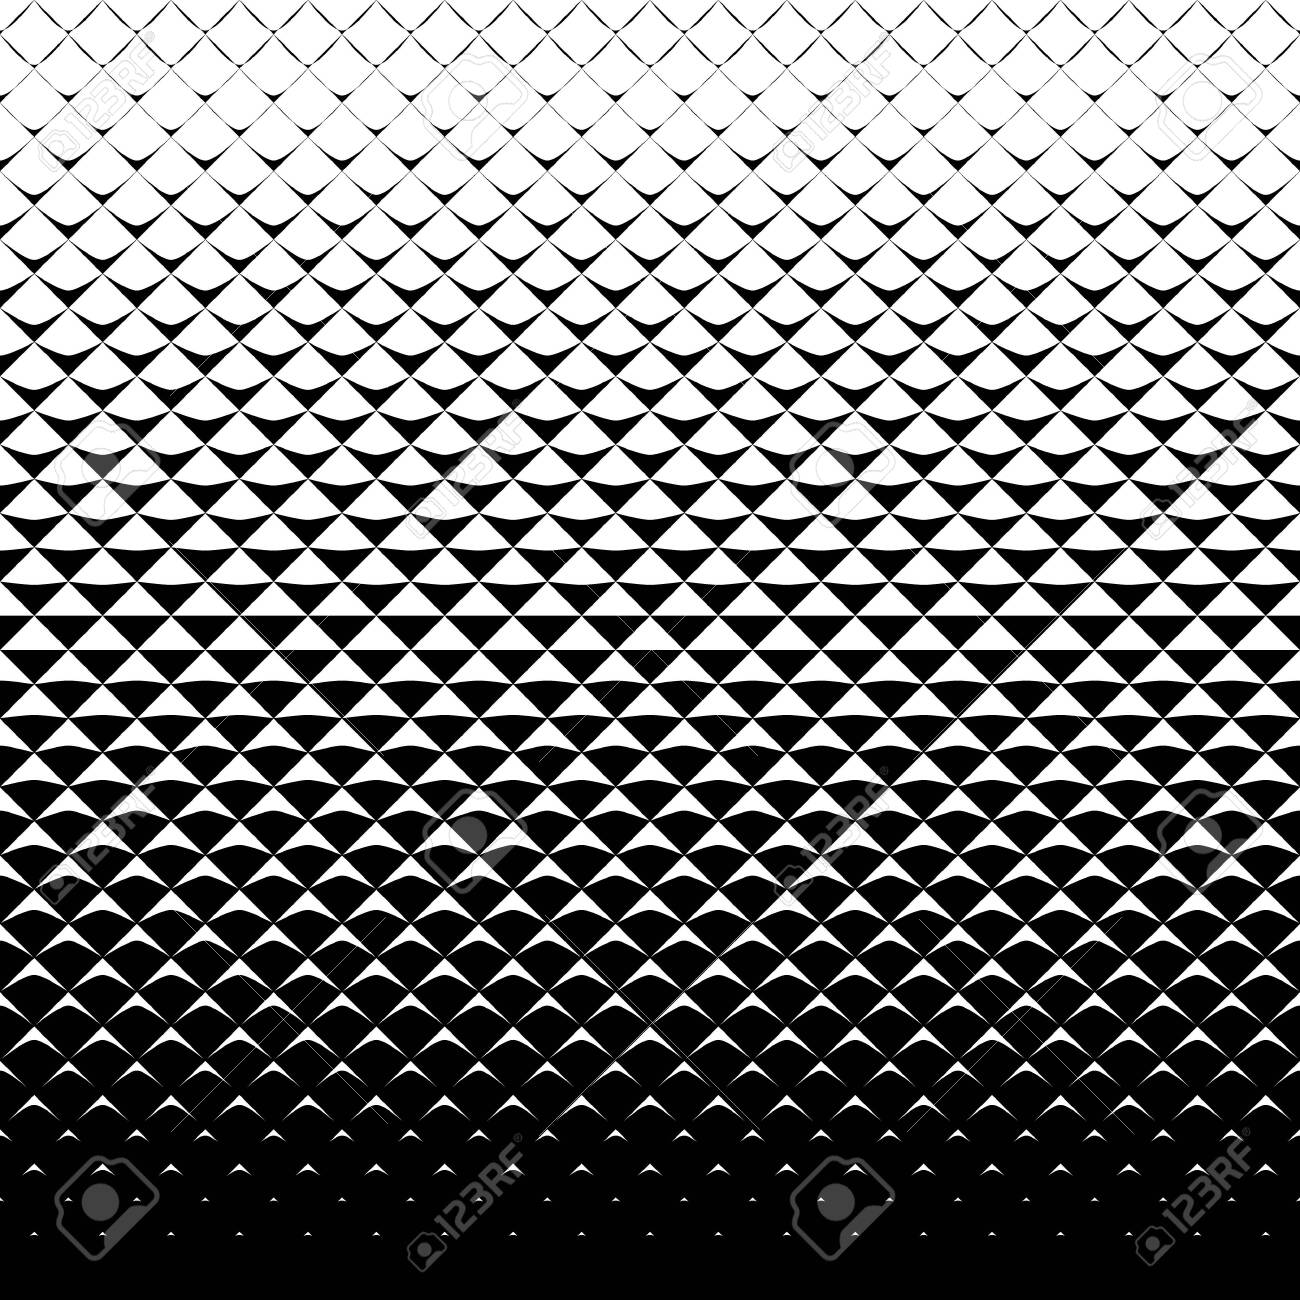 Abstract monochrome background with triangles. Seamless halftone pattern. - 129736505